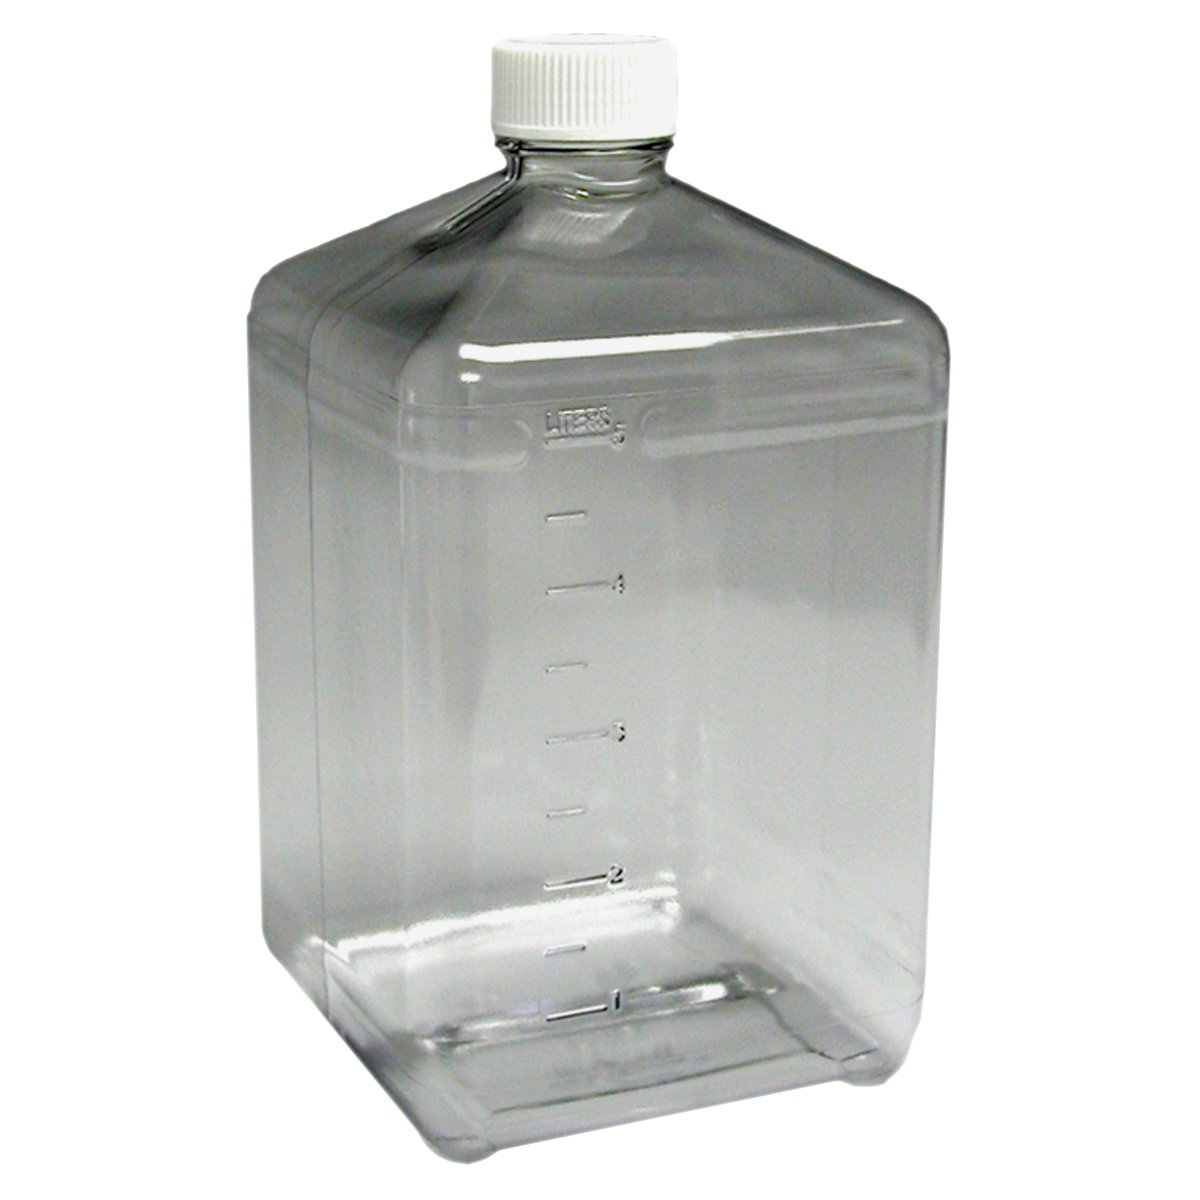 Nalgene 3405-42 Polycarbonate 5L InVitro Biotainer Carboy, without Handle, Sterile (Case of 6)